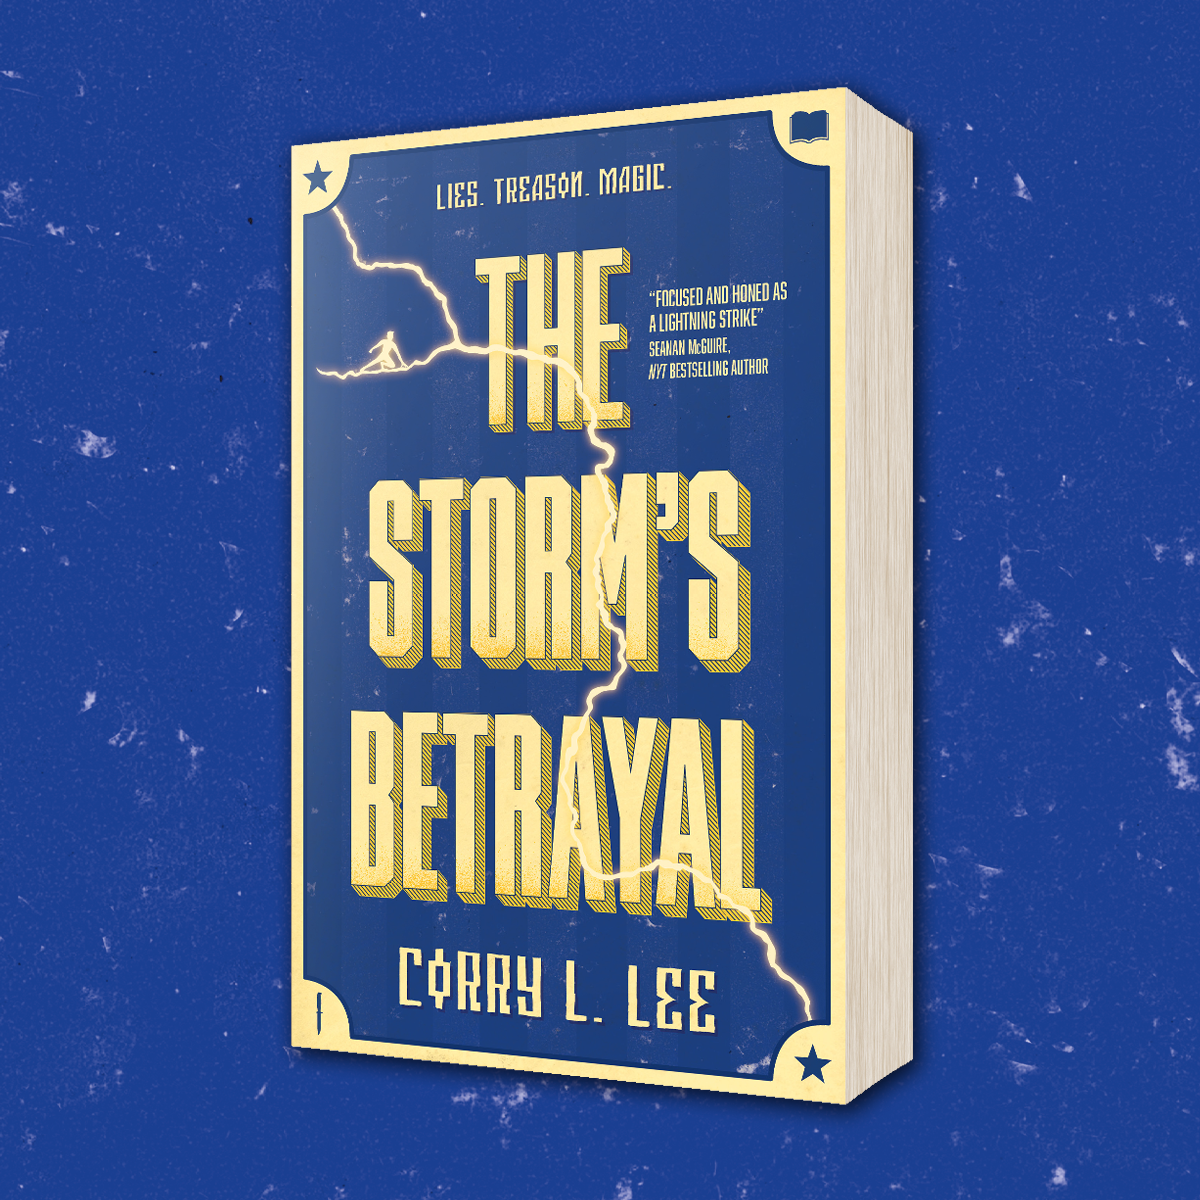 OUT NOW: The Storm's Betrayal by Corry L. Lee